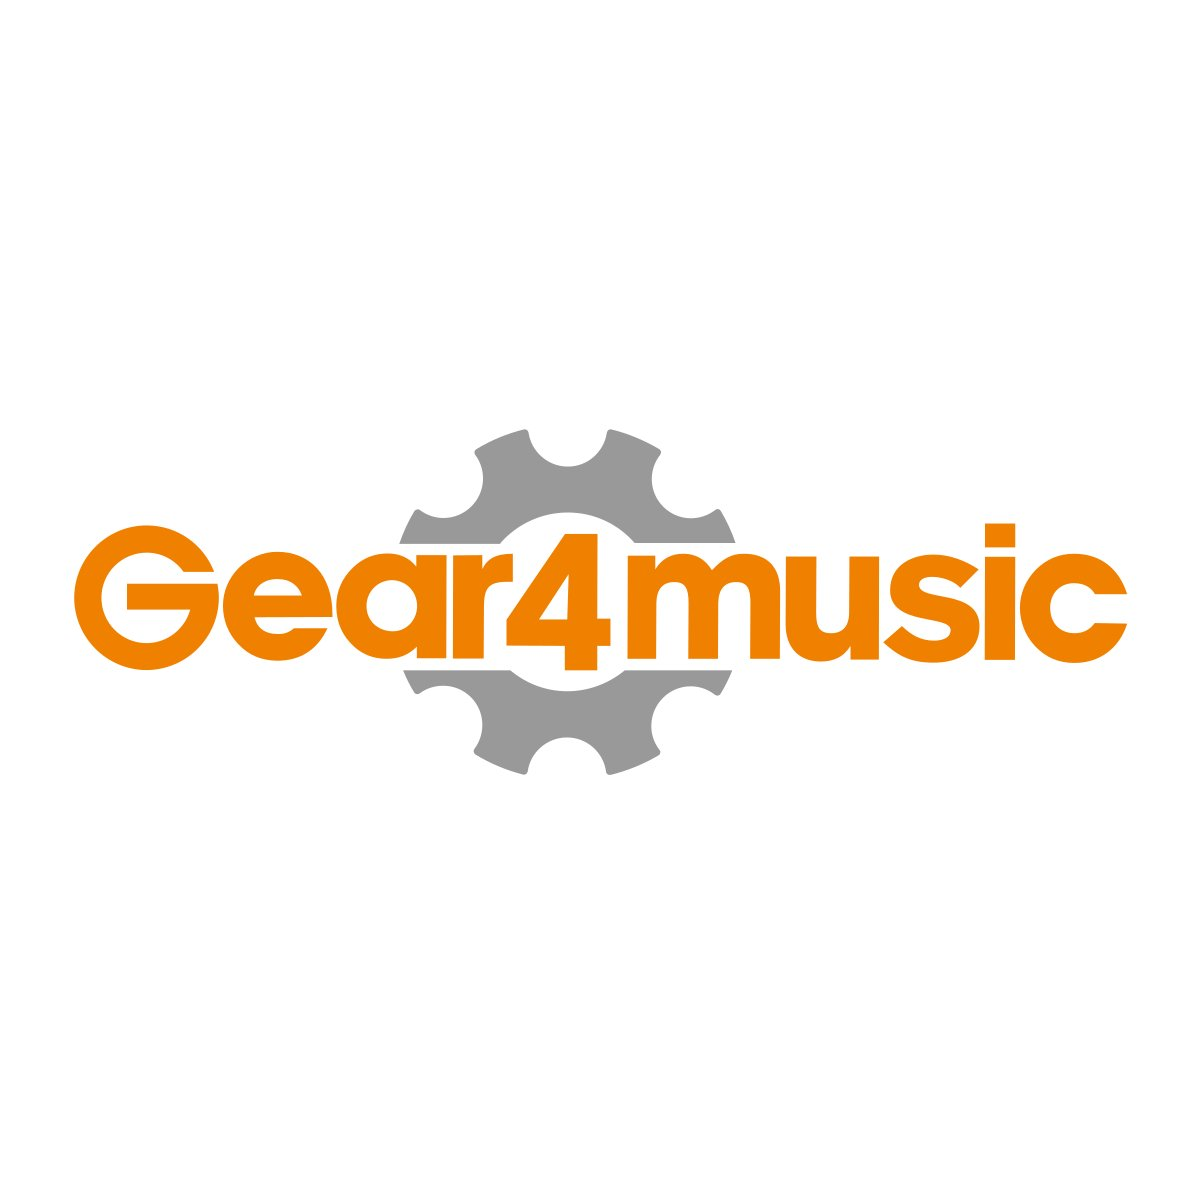 Image of Classical Guitar Strings by Gear4music